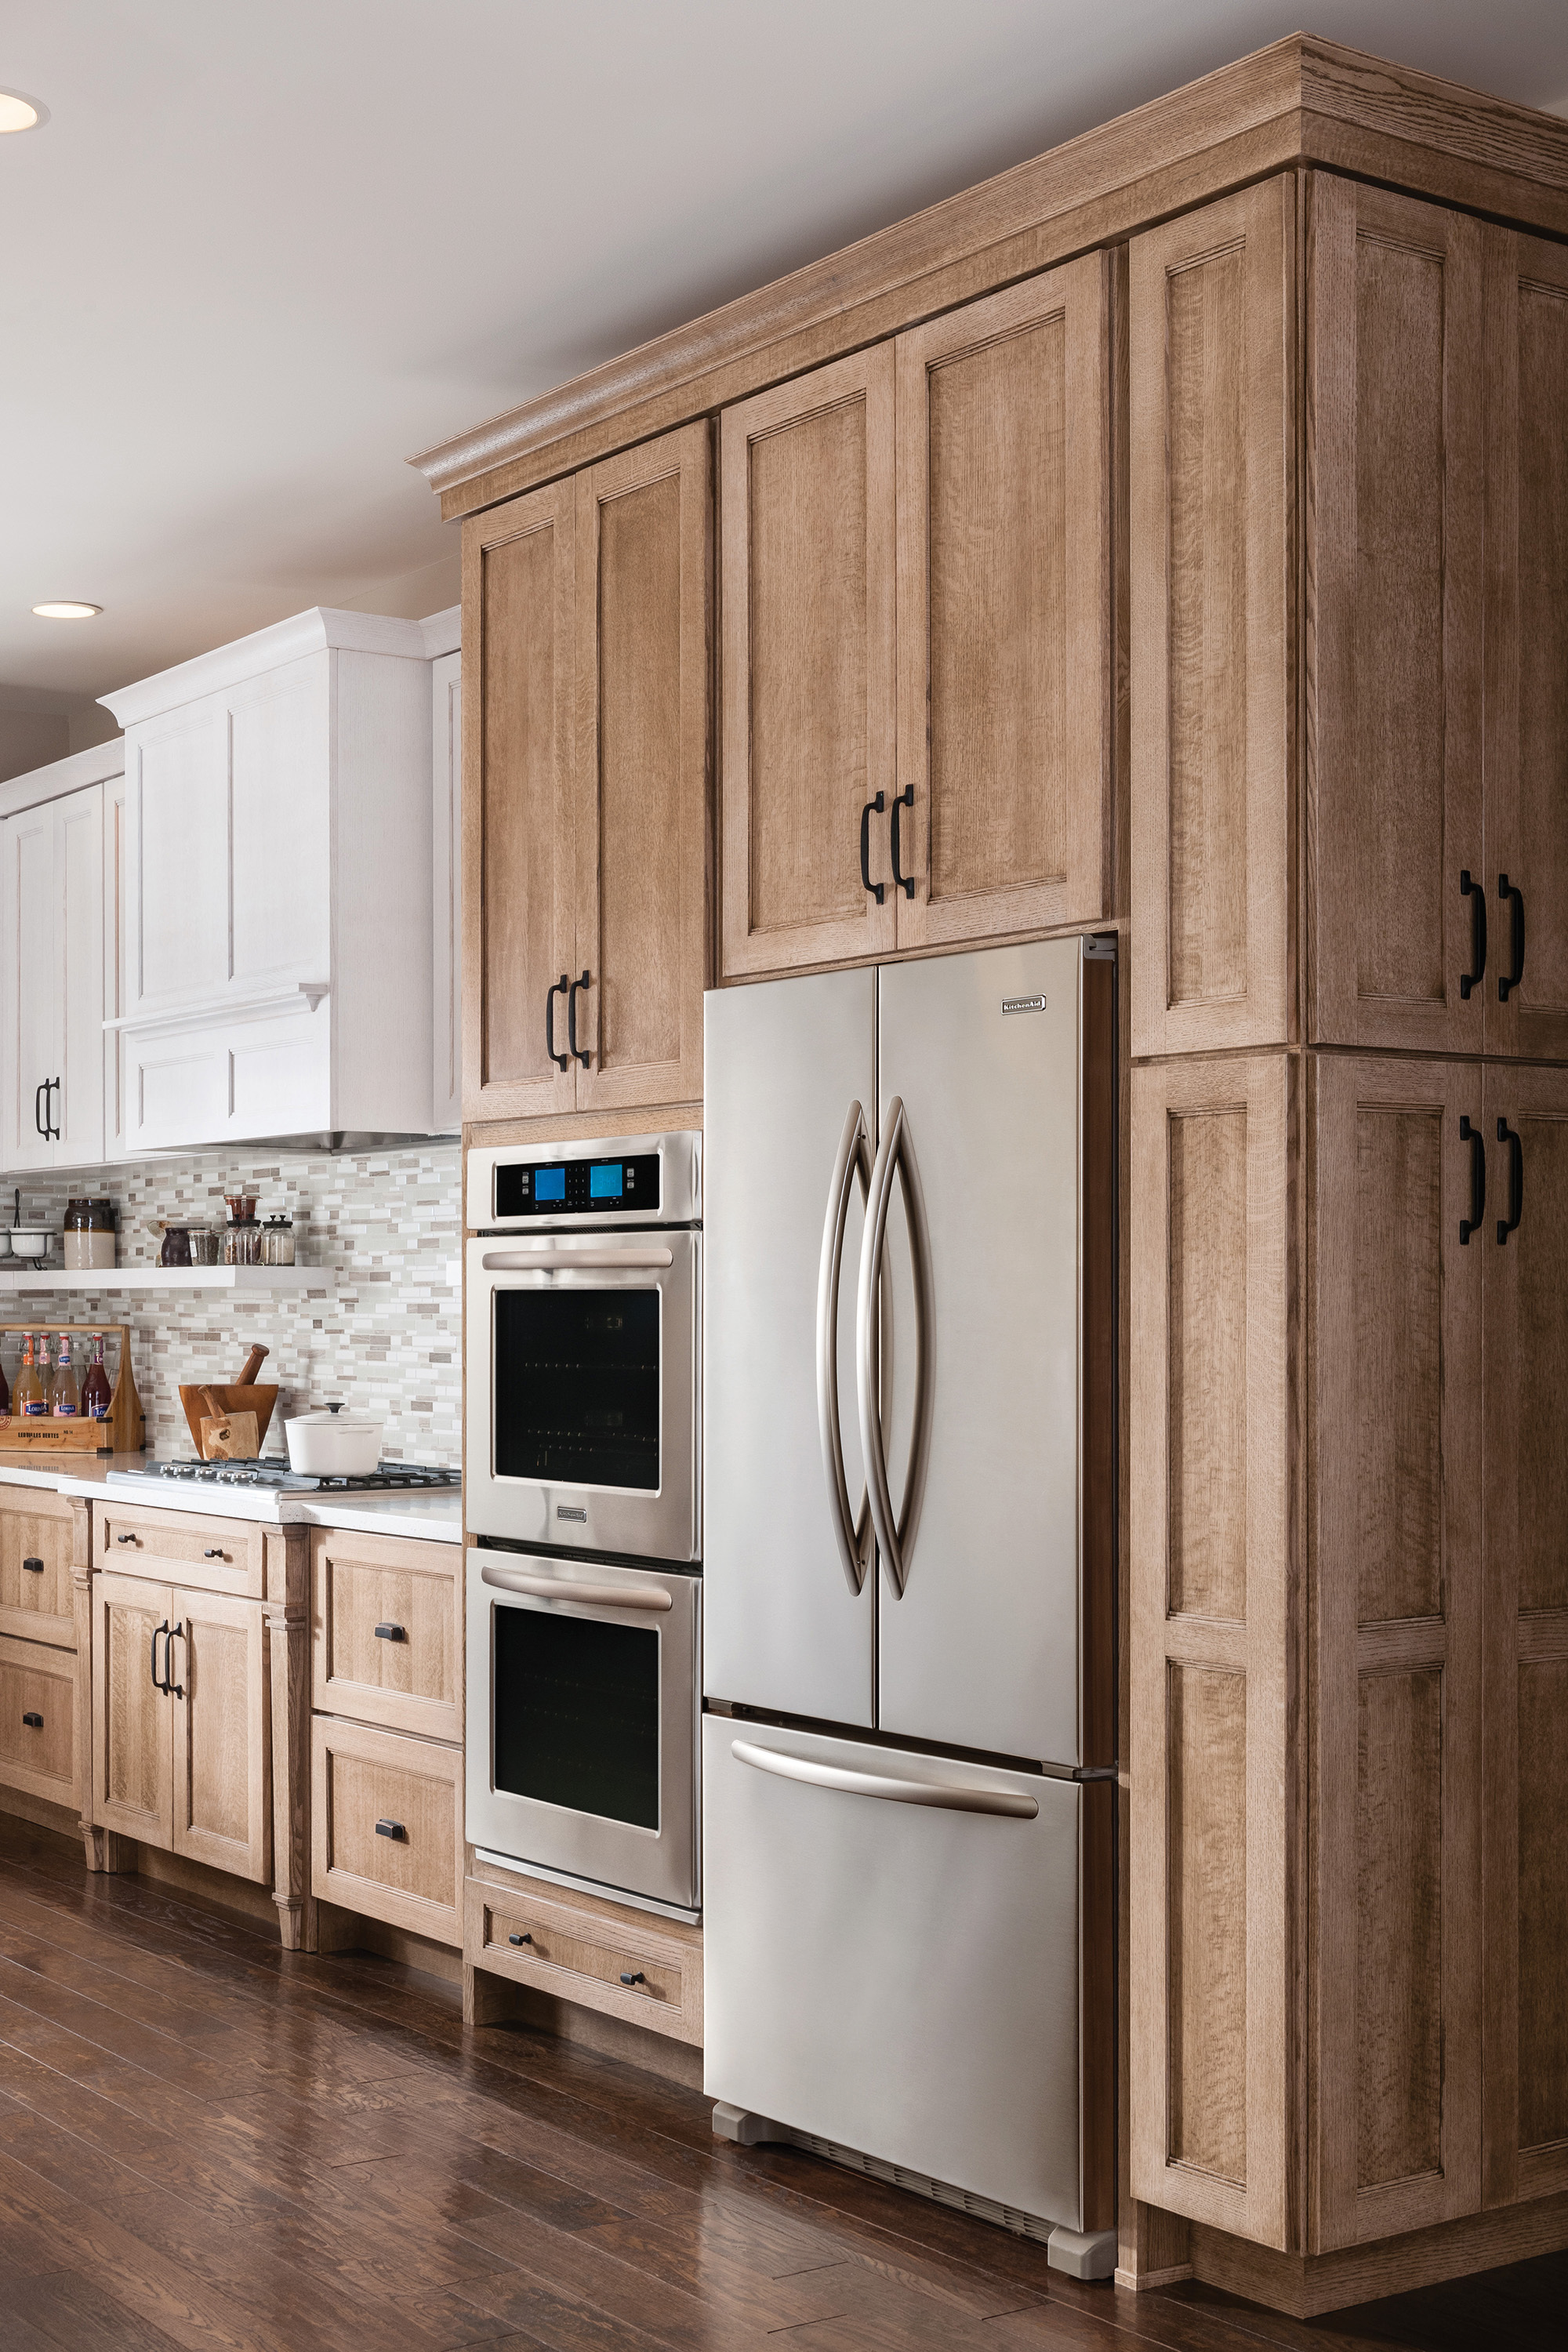 Schuler Cabinetry Launches New Cappuccino Finish | Business Wire